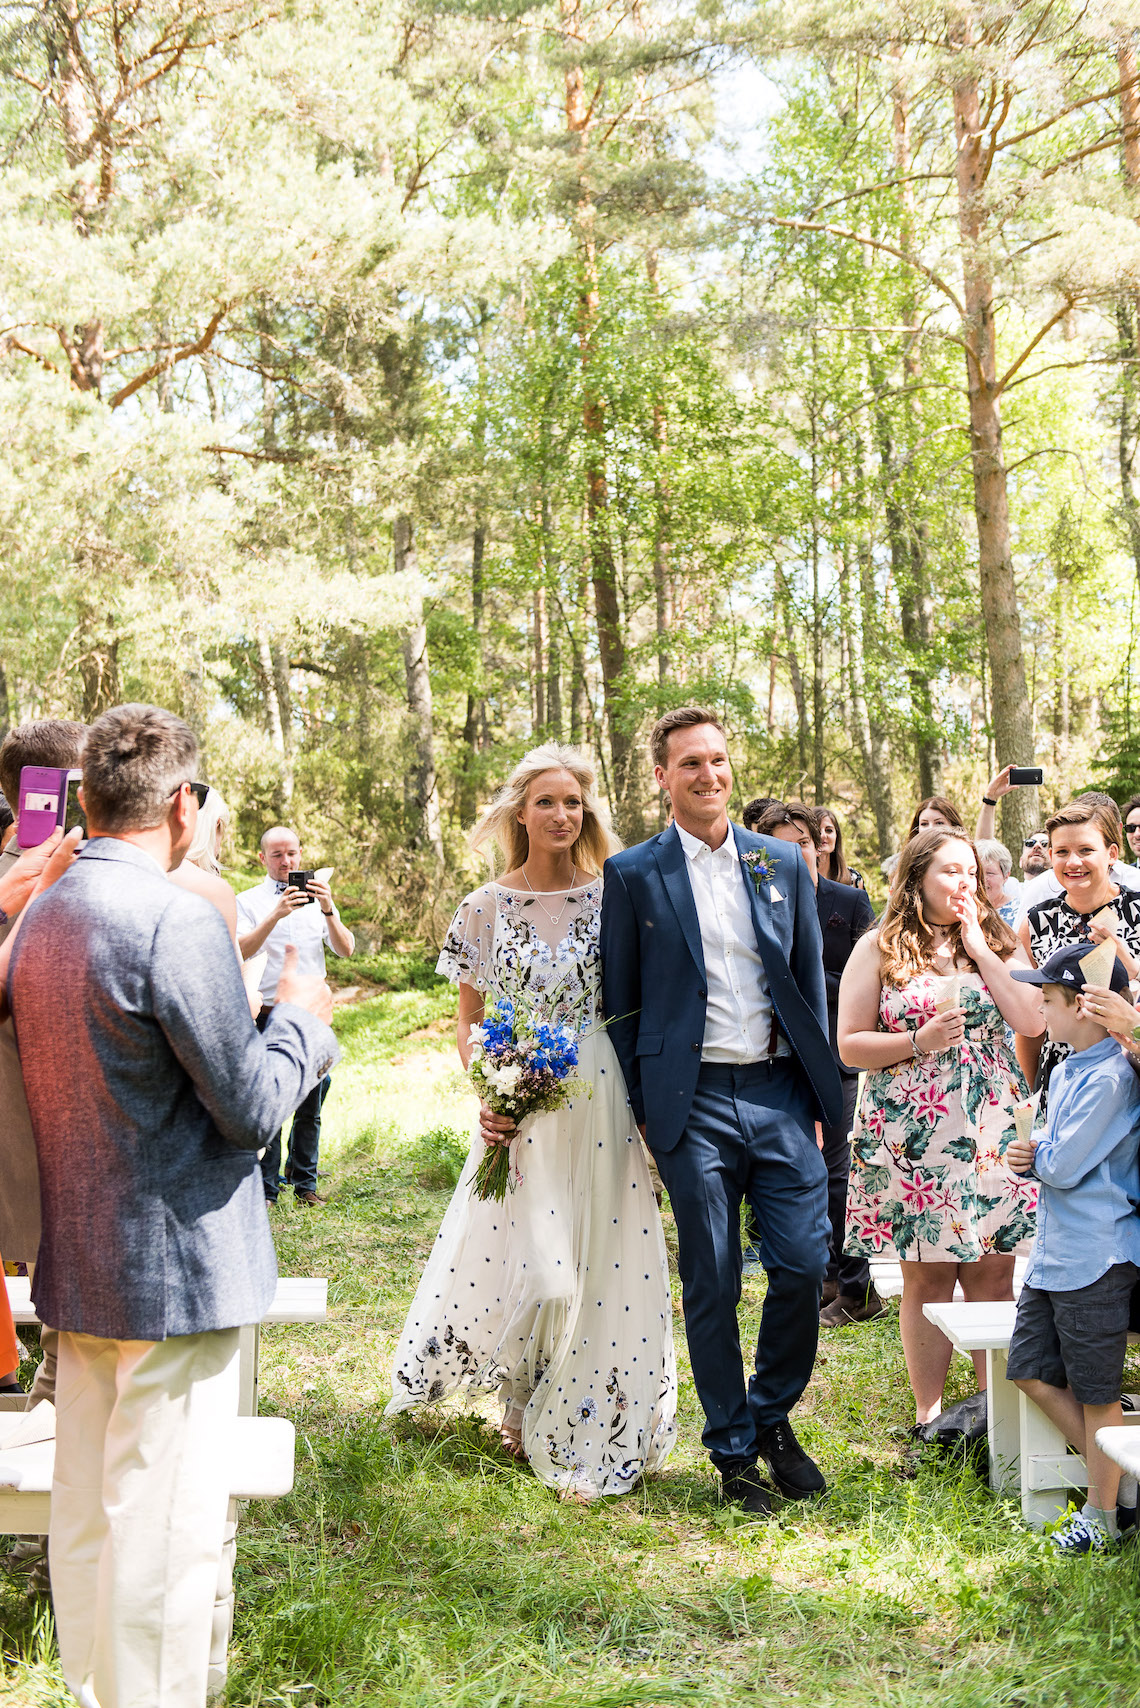 Wildflower Wedding With A Colorful Floral Wedding Dress – Jessica Grace Photography 29